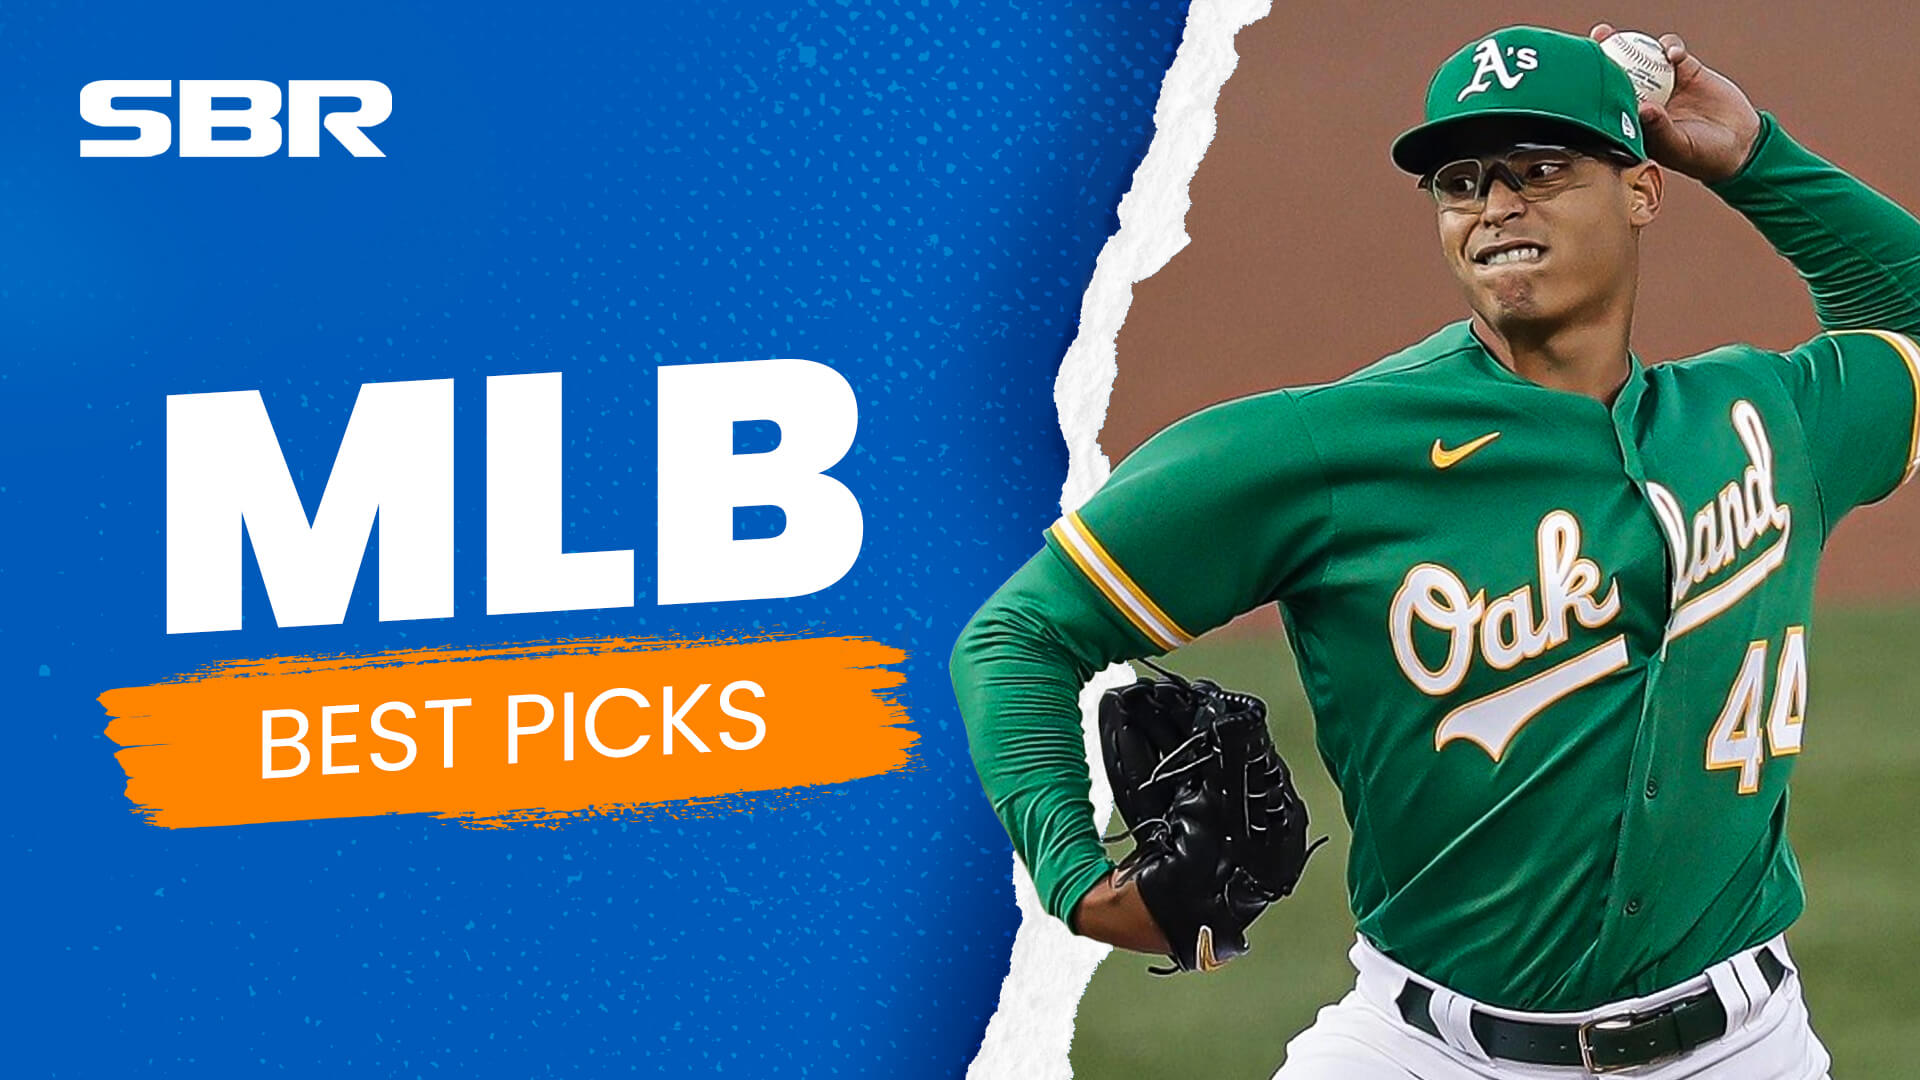 [WATCH] Best MLB Bets and Predictions for September 16th